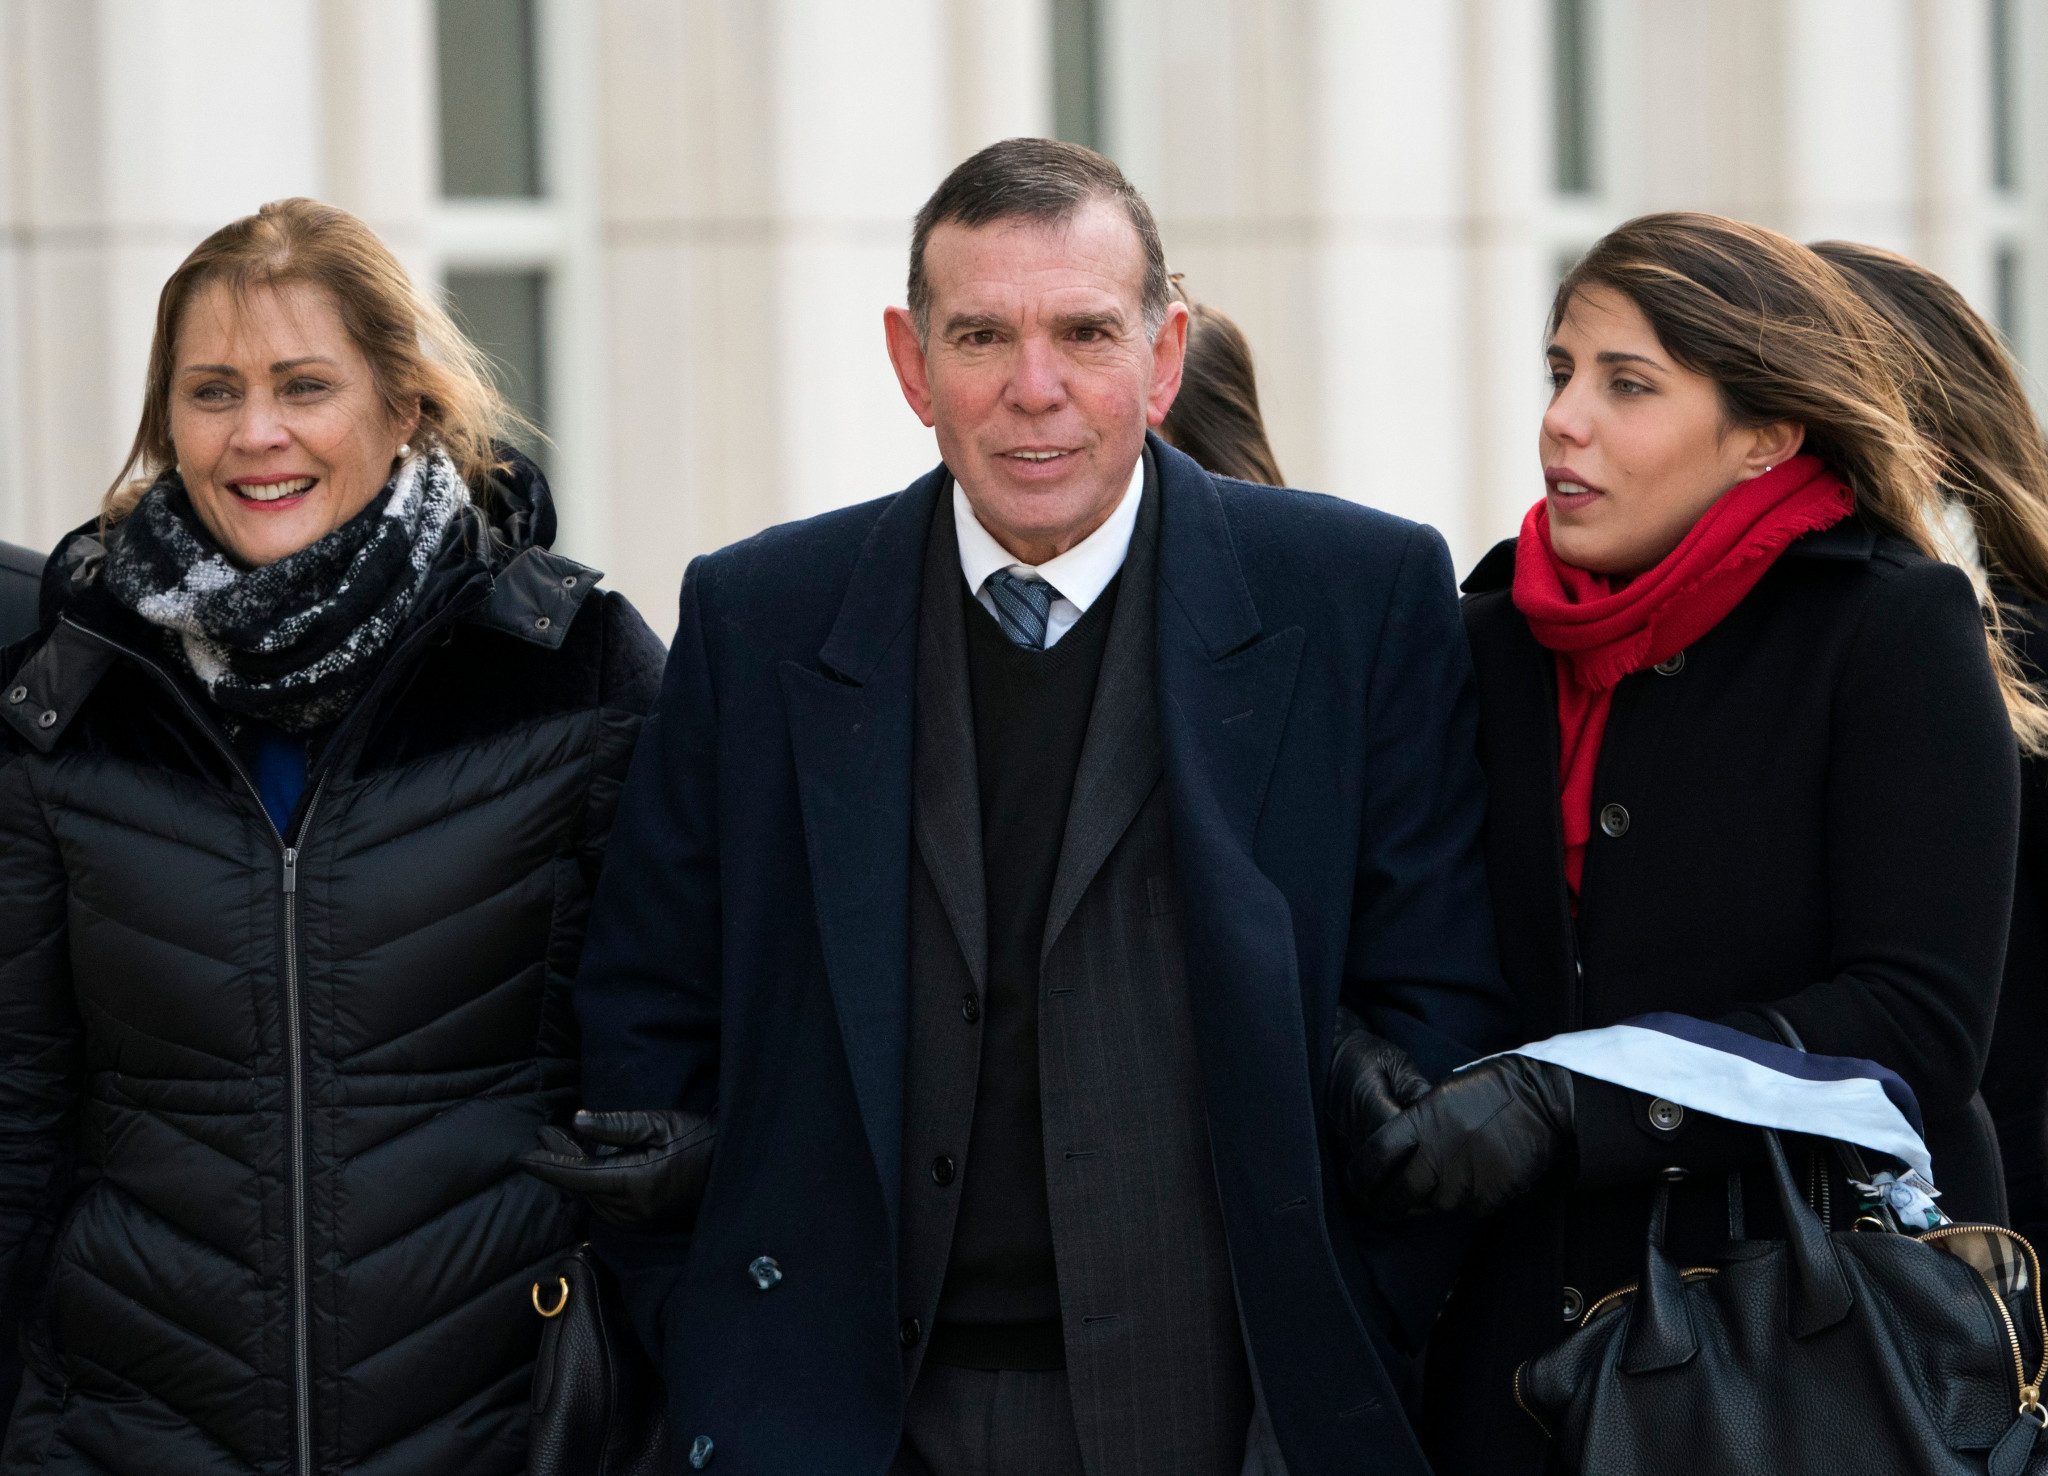 Former FIFA vice-president Juan Angel Napout was sentenced to nine years in prison in August ©Getty Images